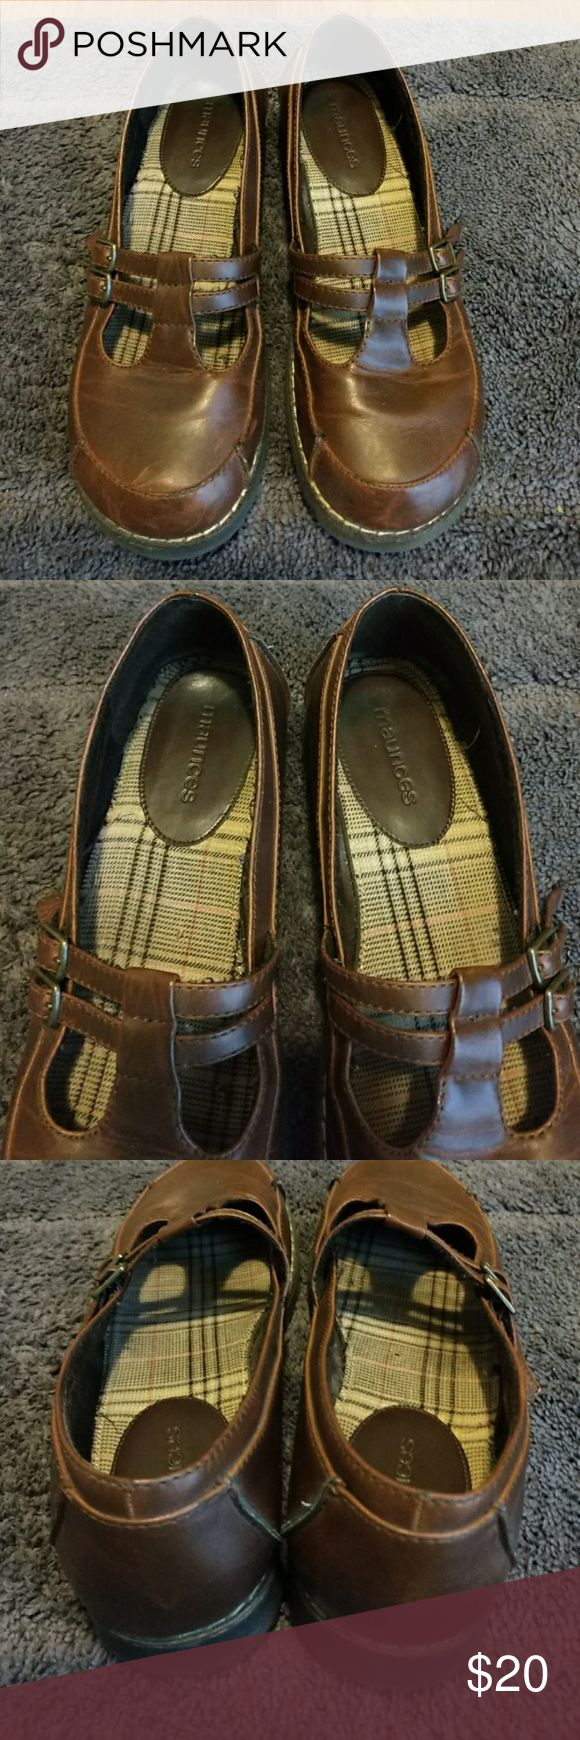 Maurices Mary Janes Maurices Mary Janes they are very comfortable and in great condition, I  just don't wear them anymore there really cute with jeans Maurices Shoes Flats & Loafers